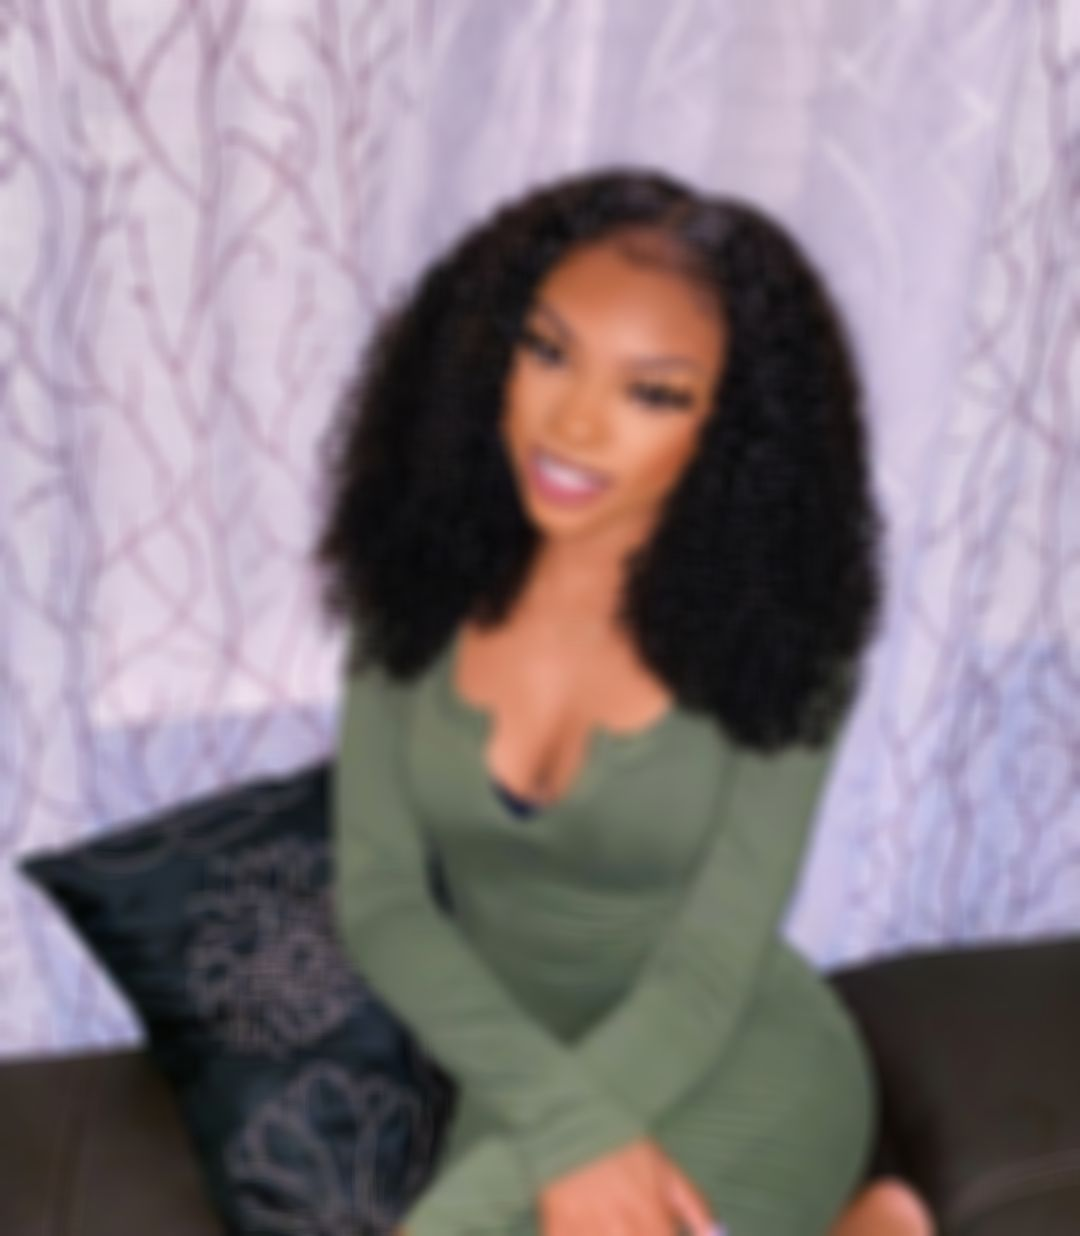 Curly Wigs Lace Front Curly Hair Black Hair Wig Store Near Me 10 Inch Curly Lace Wig 10A Hair Afro Lace Wig